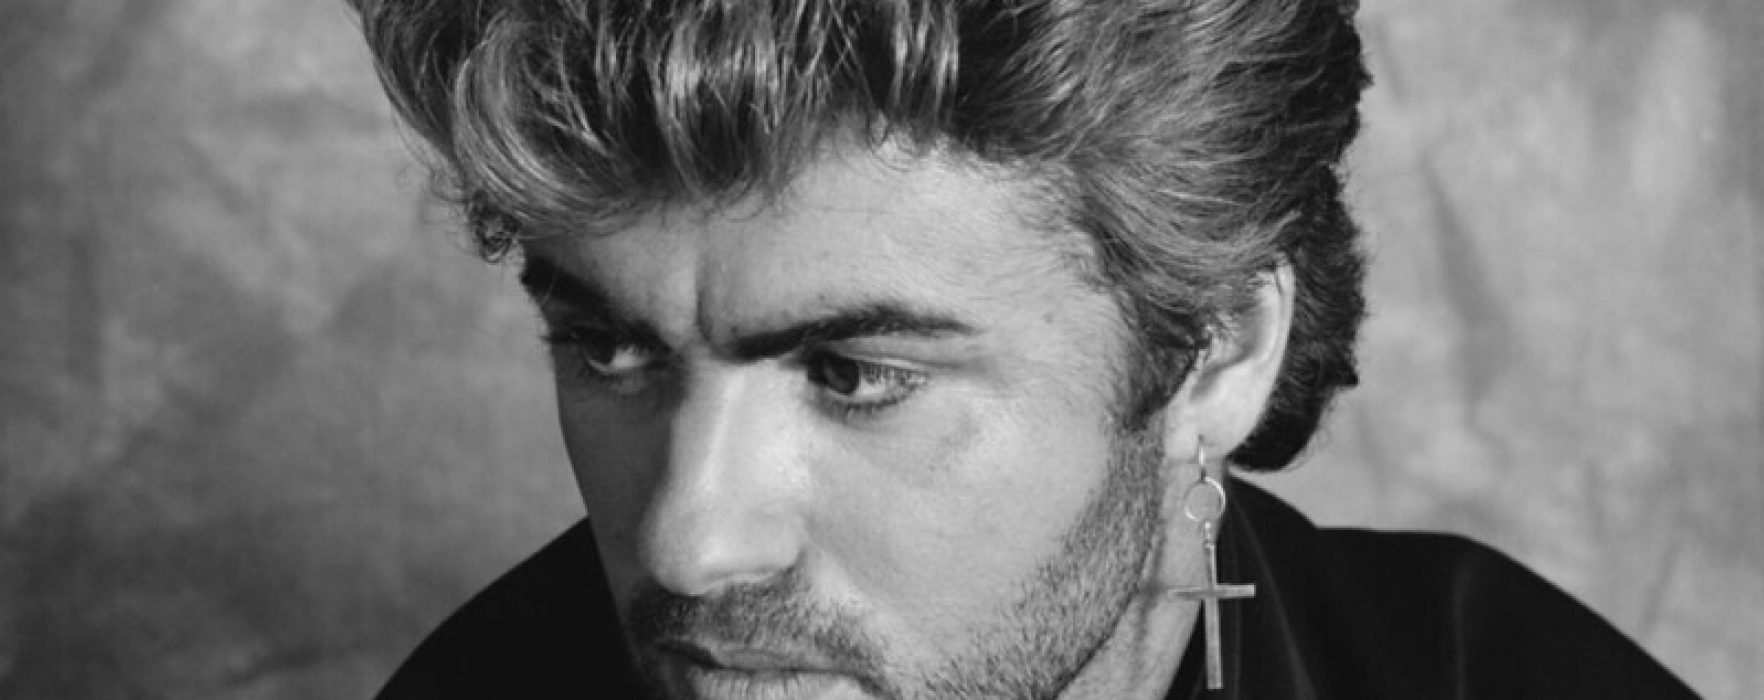 George Michael's first new track since his death has been released